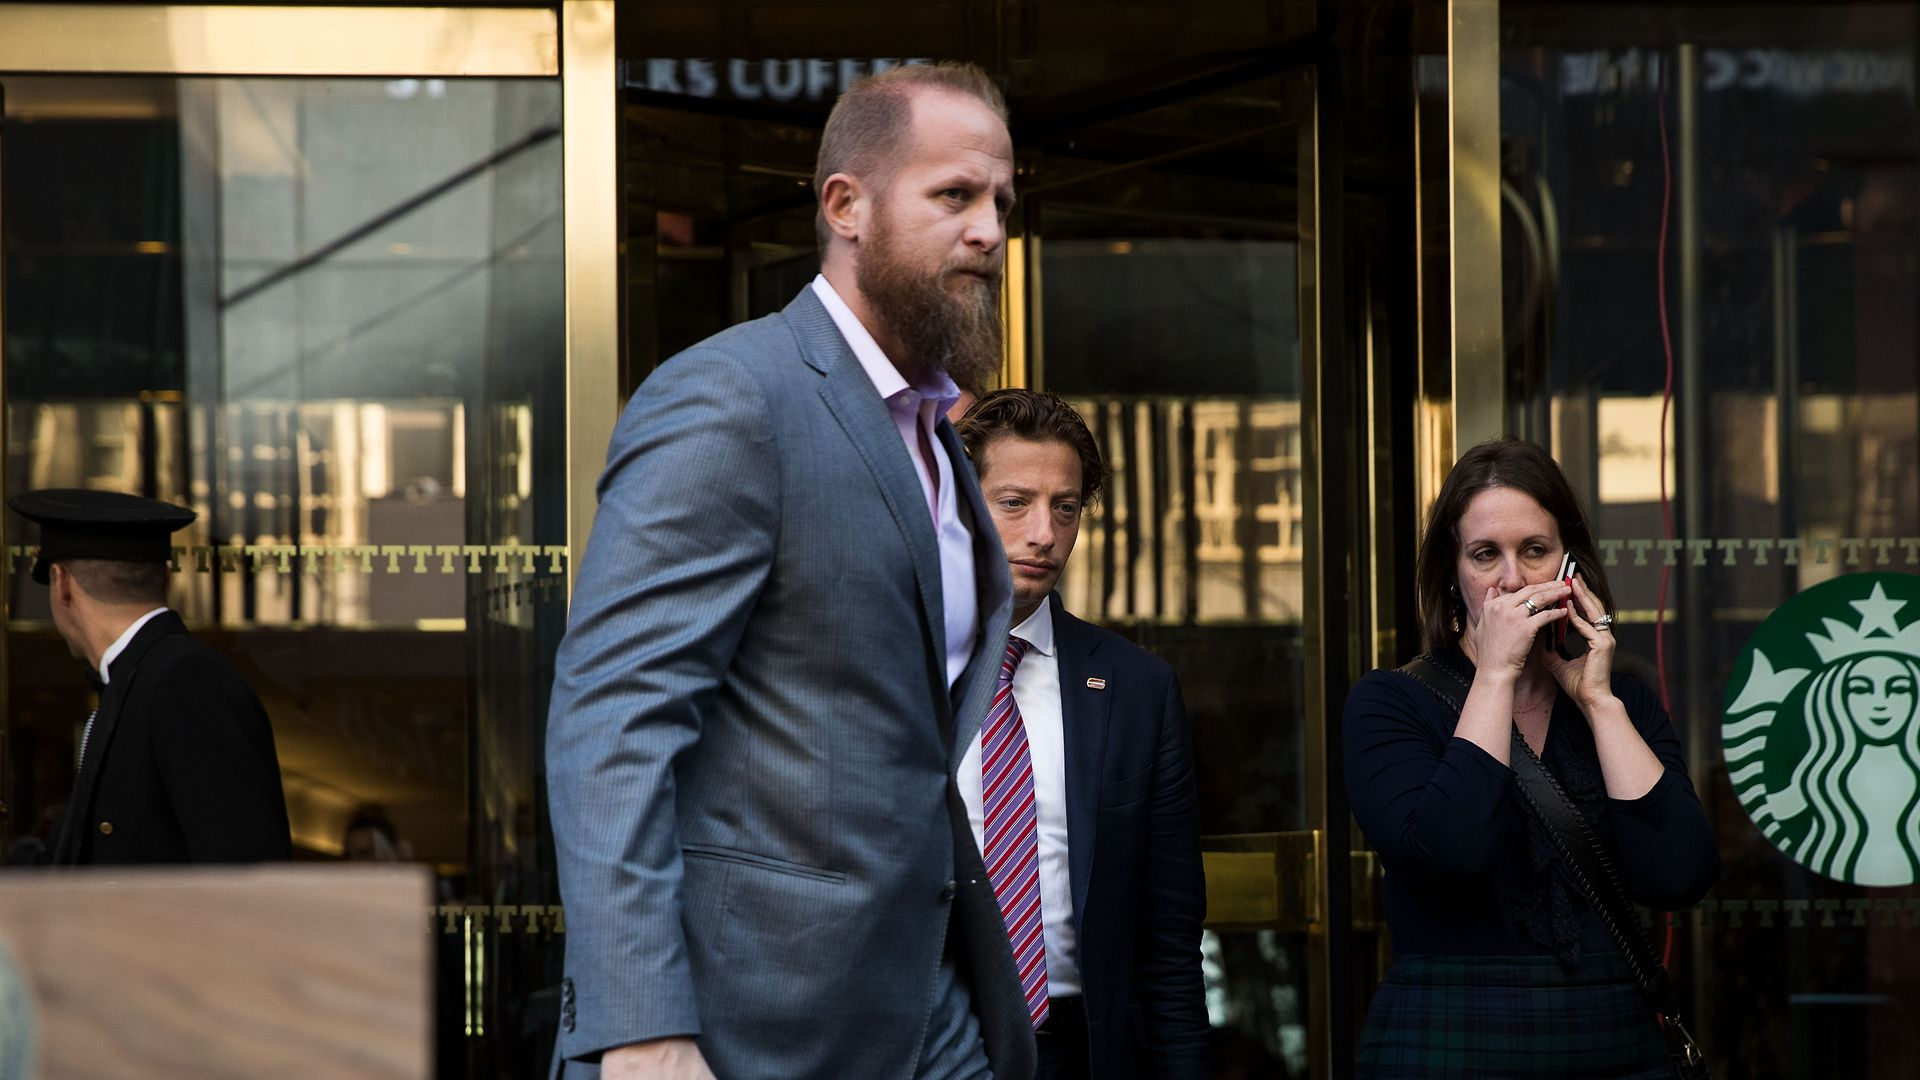 Brad Parscale walking in front of a Starbucks in a grey suit